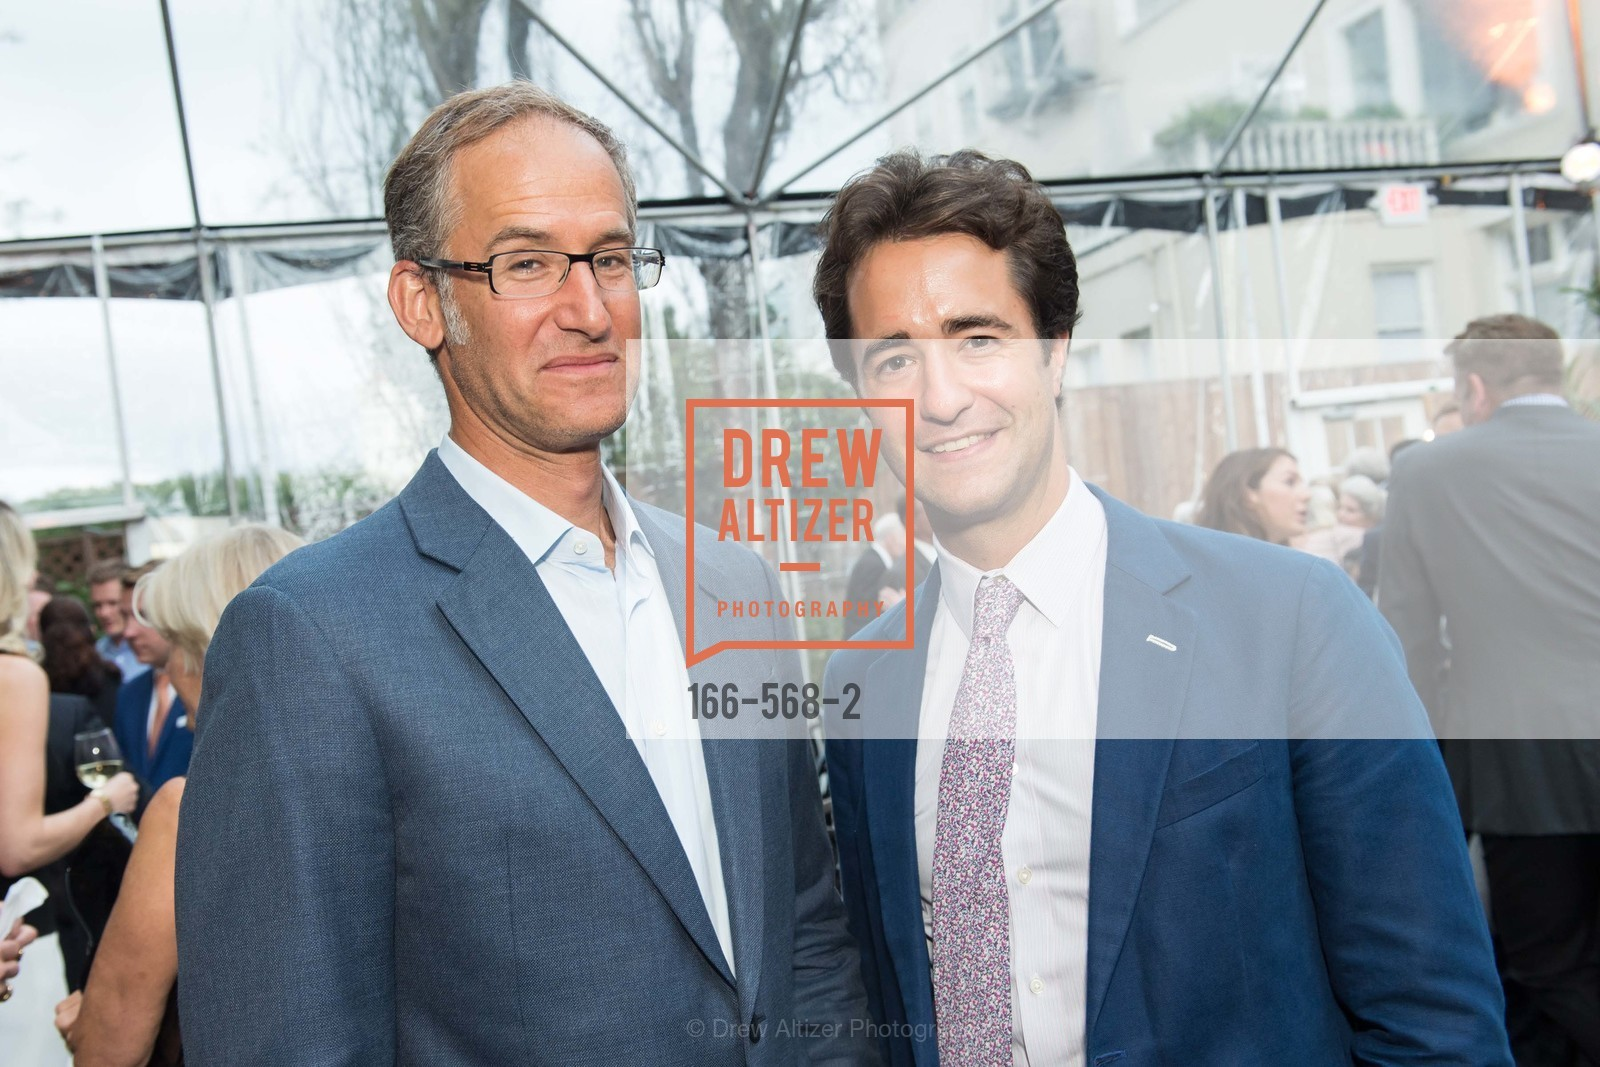 Ethan Blatzman, Jeremiah Evers, SOTHEBY'S  Hosts a Private Viewing of Highlights from the Collection of MRS. PAUL MELLON, US, September 17th, 2014,Drew Altizer, Drew Altizer Photography, full-service event agency, private events, San Francisco photographer, photographer California